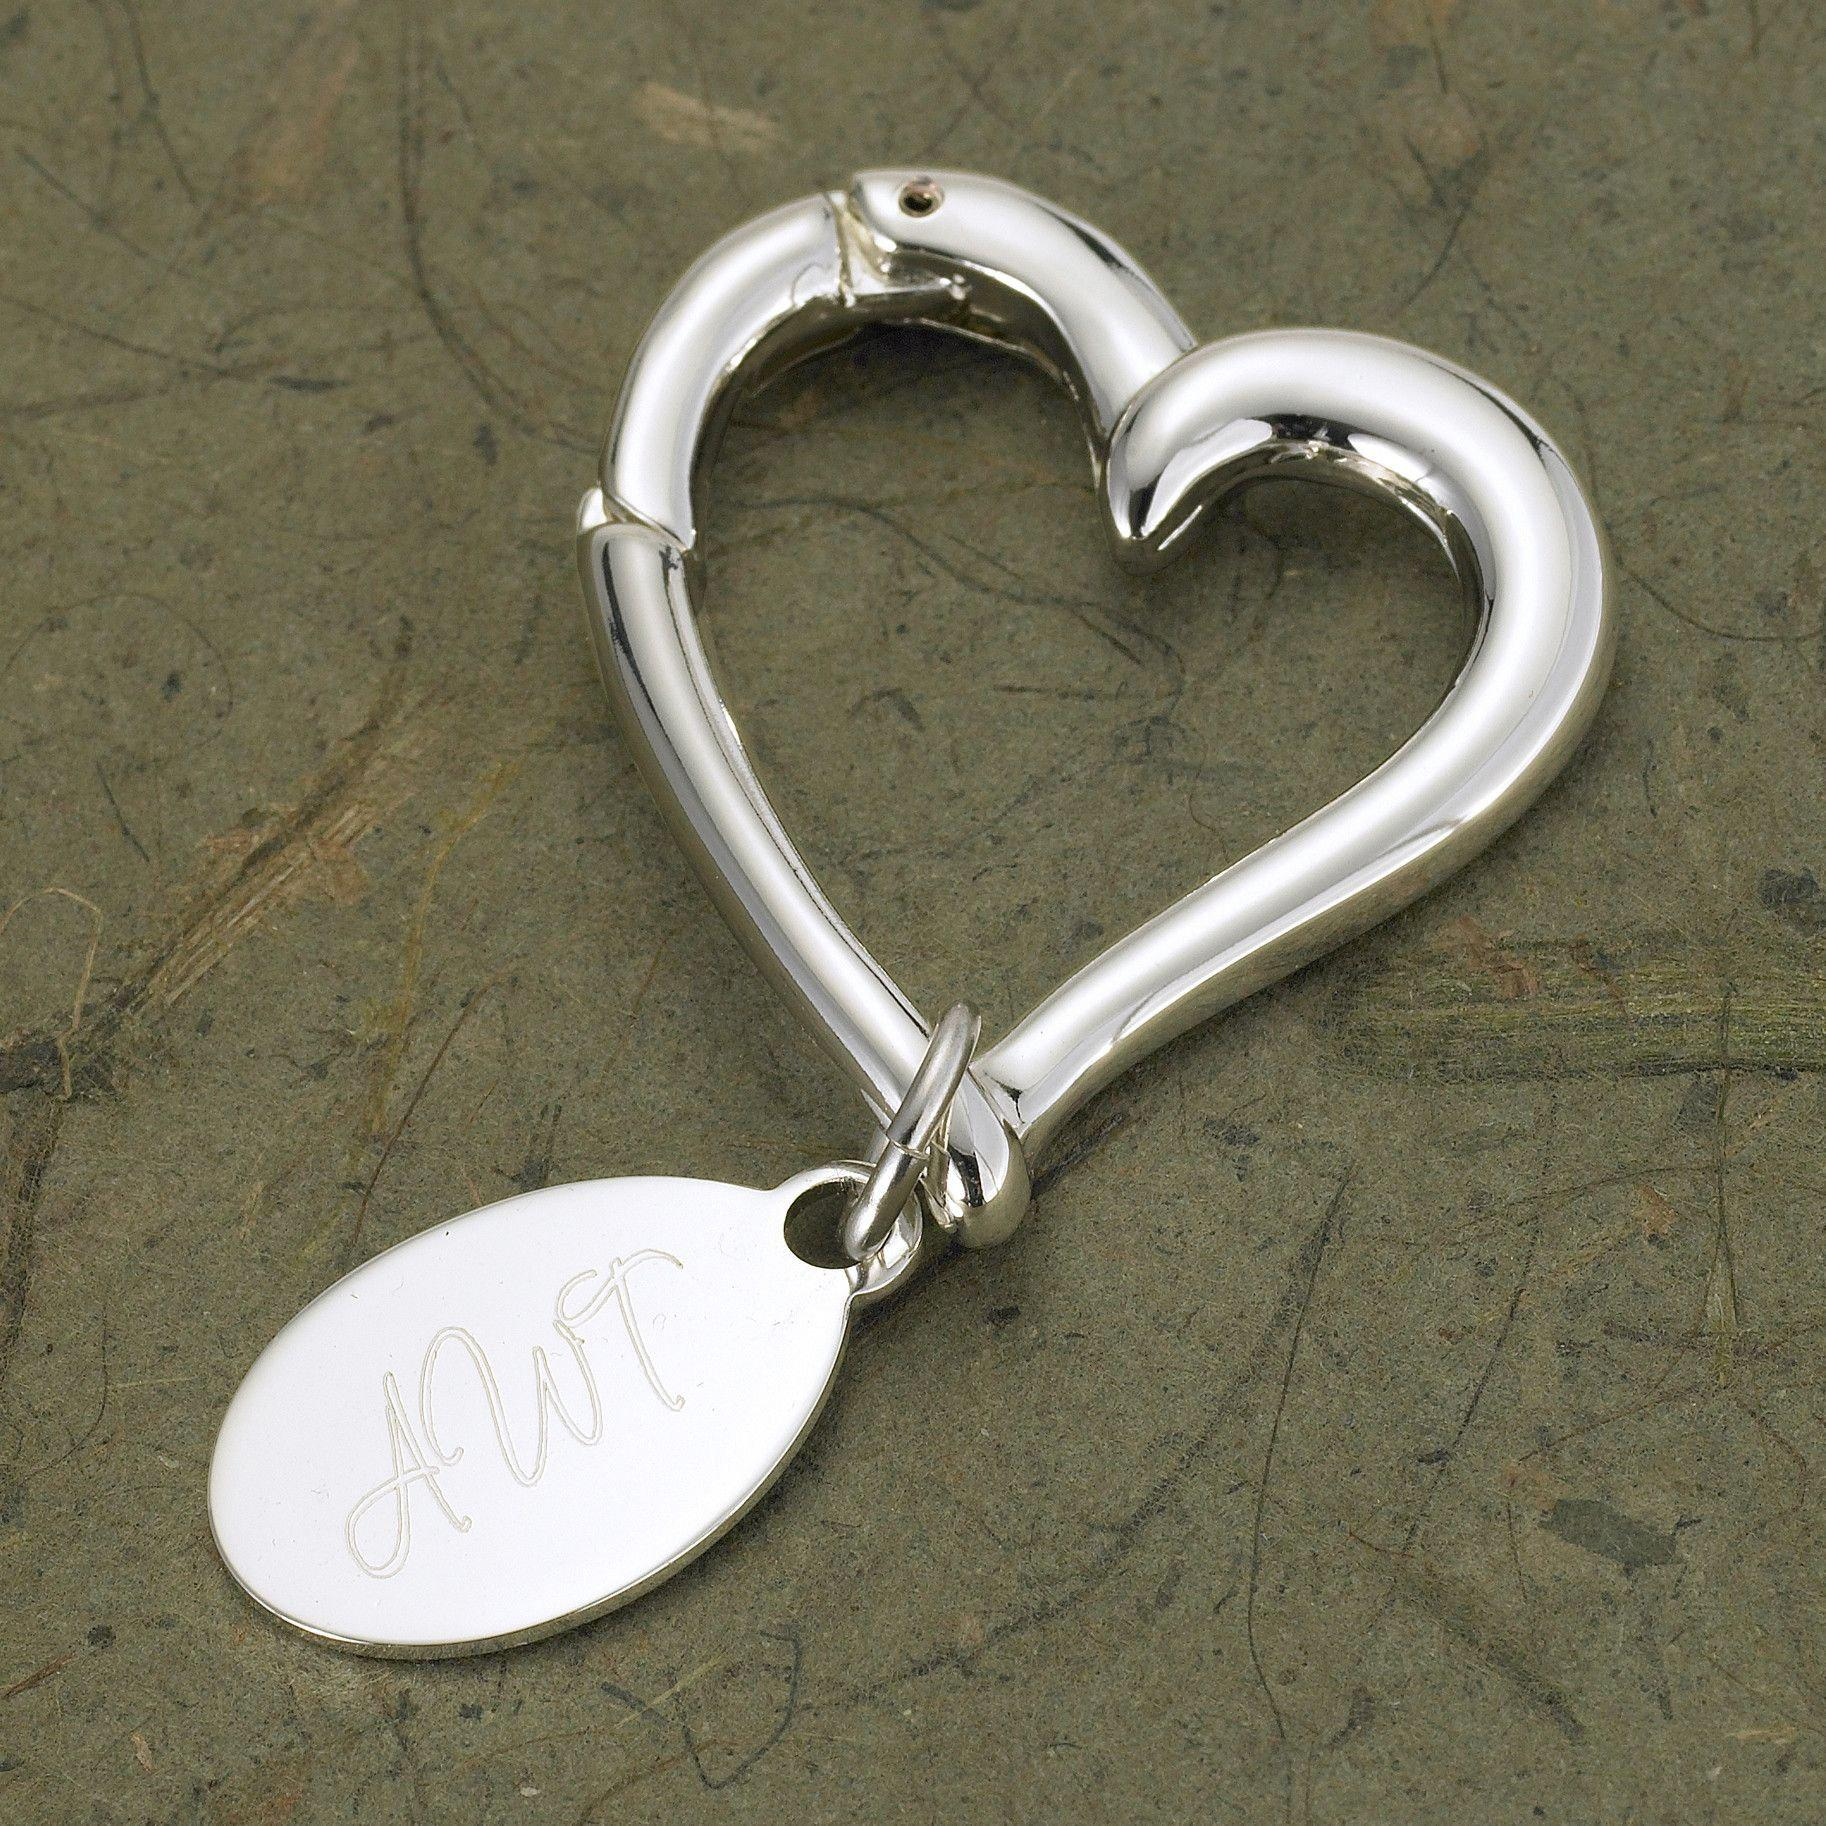 Personalized Keychain | Heart | Oval Tag | Birthday Gifts for Her